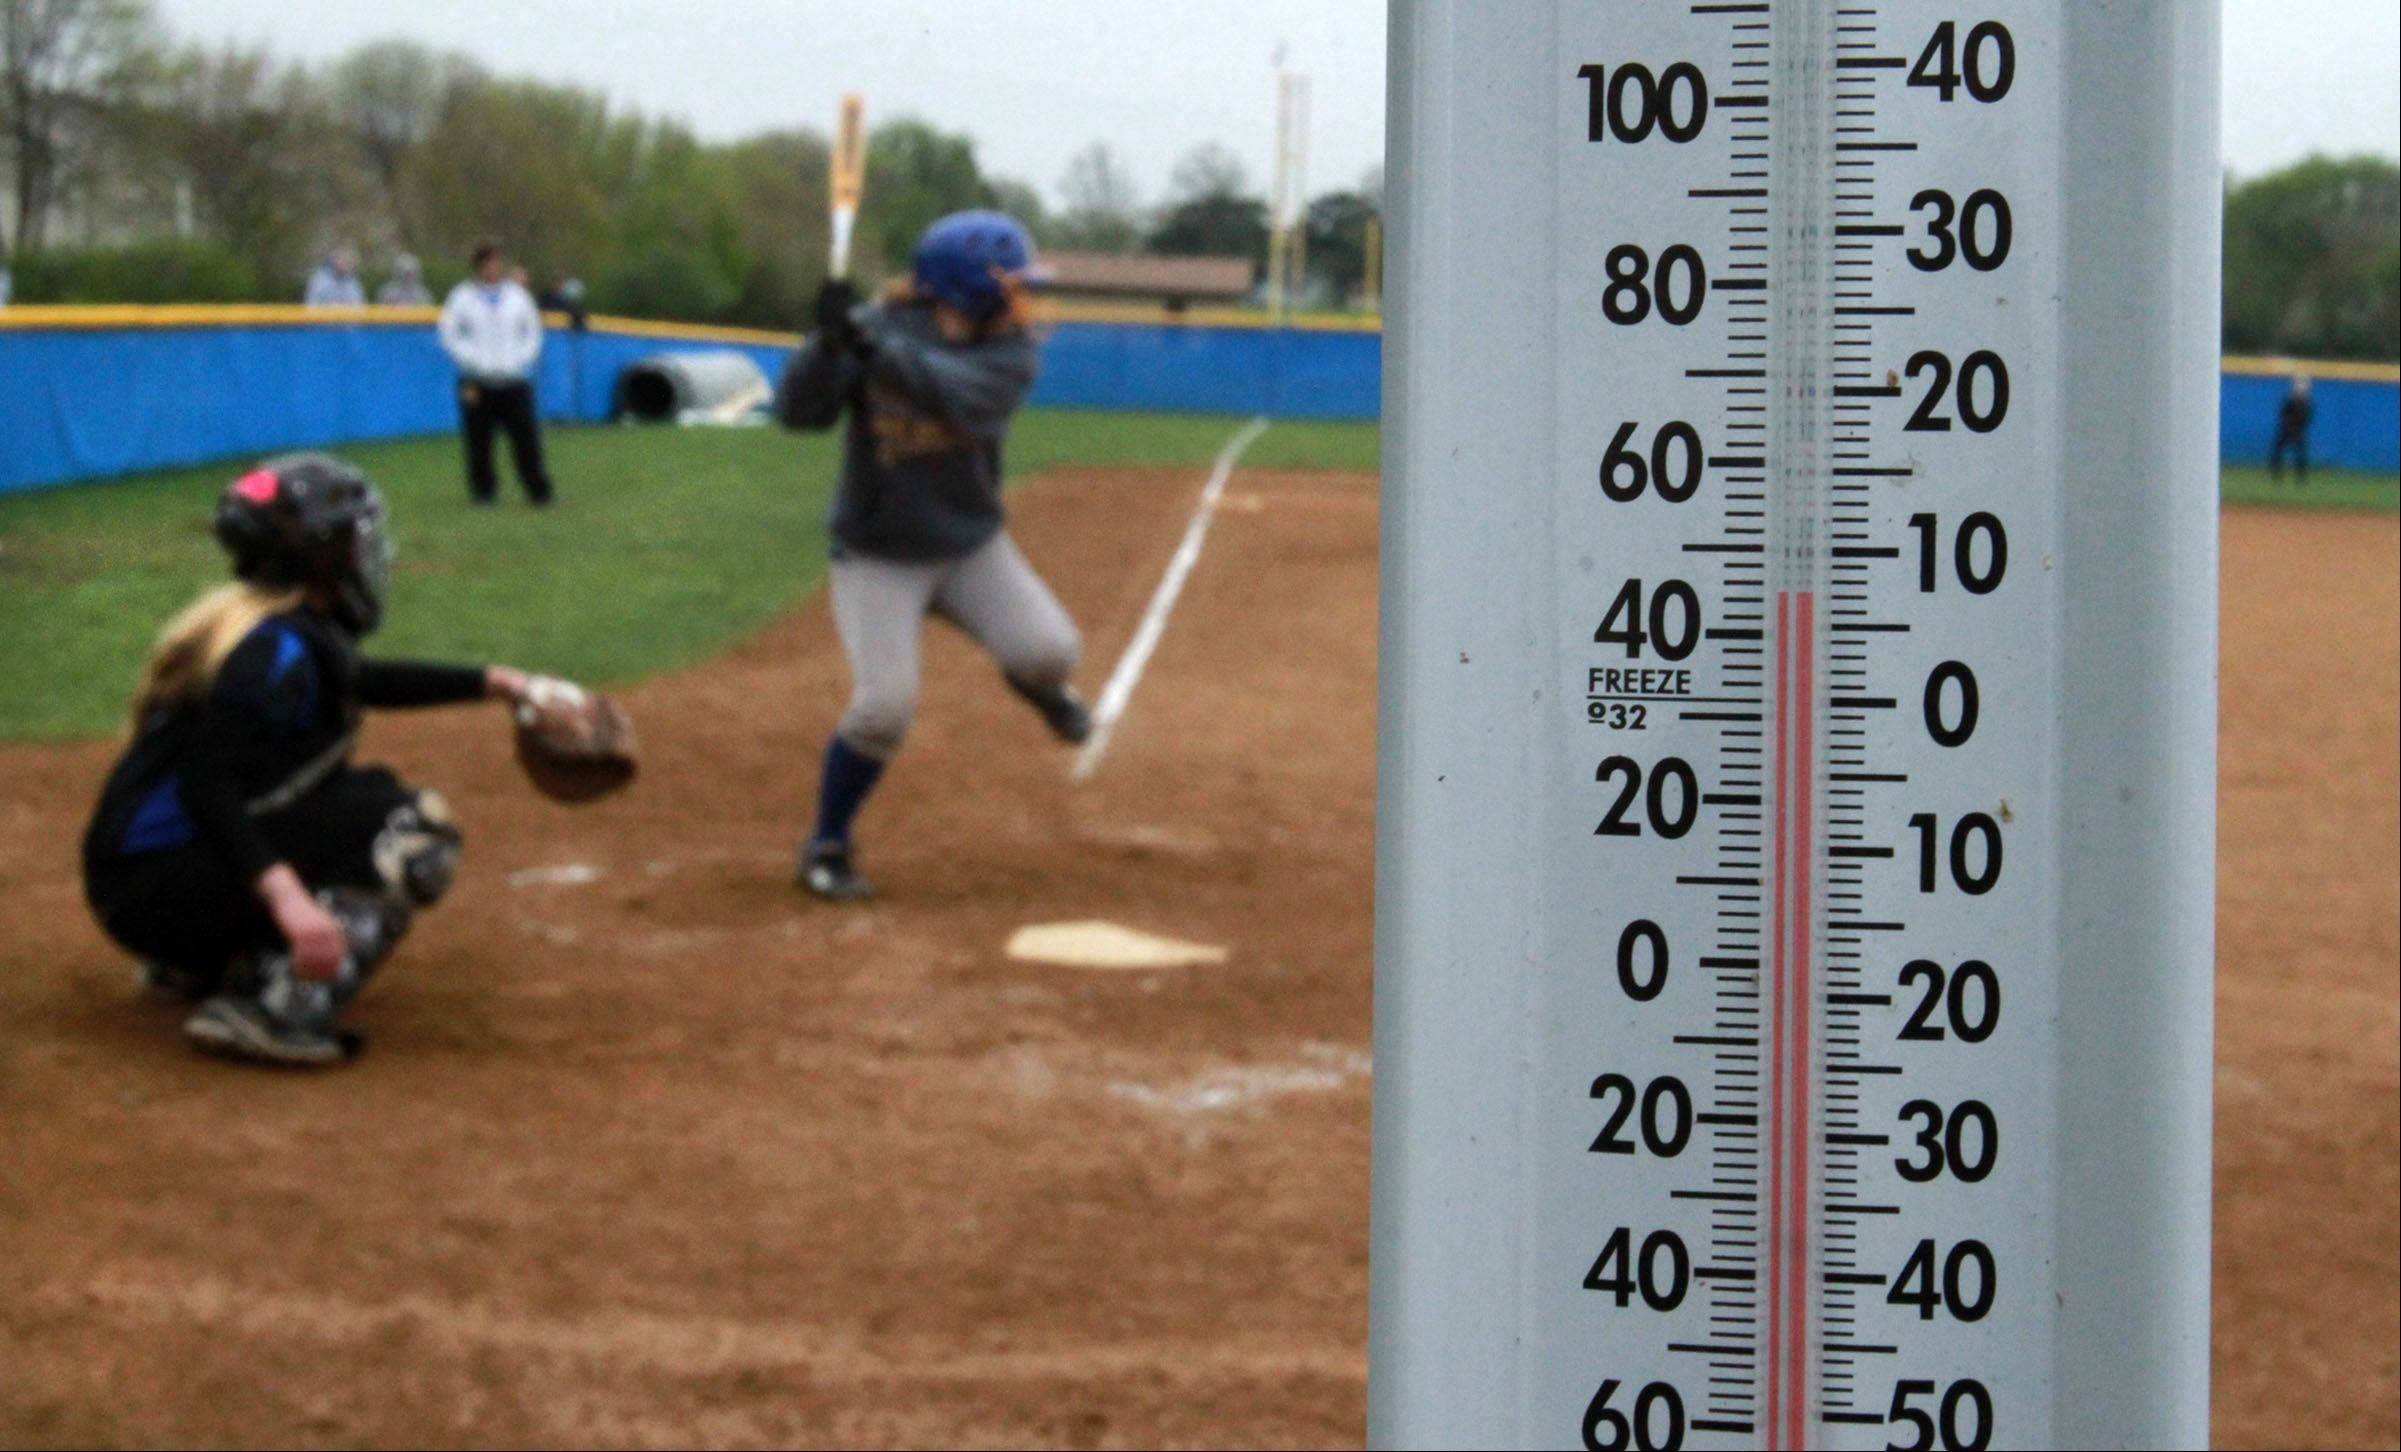 The temperature was chilly and windy for the Lake Zurich and Warren girls softball game in Gurnee on Friday.